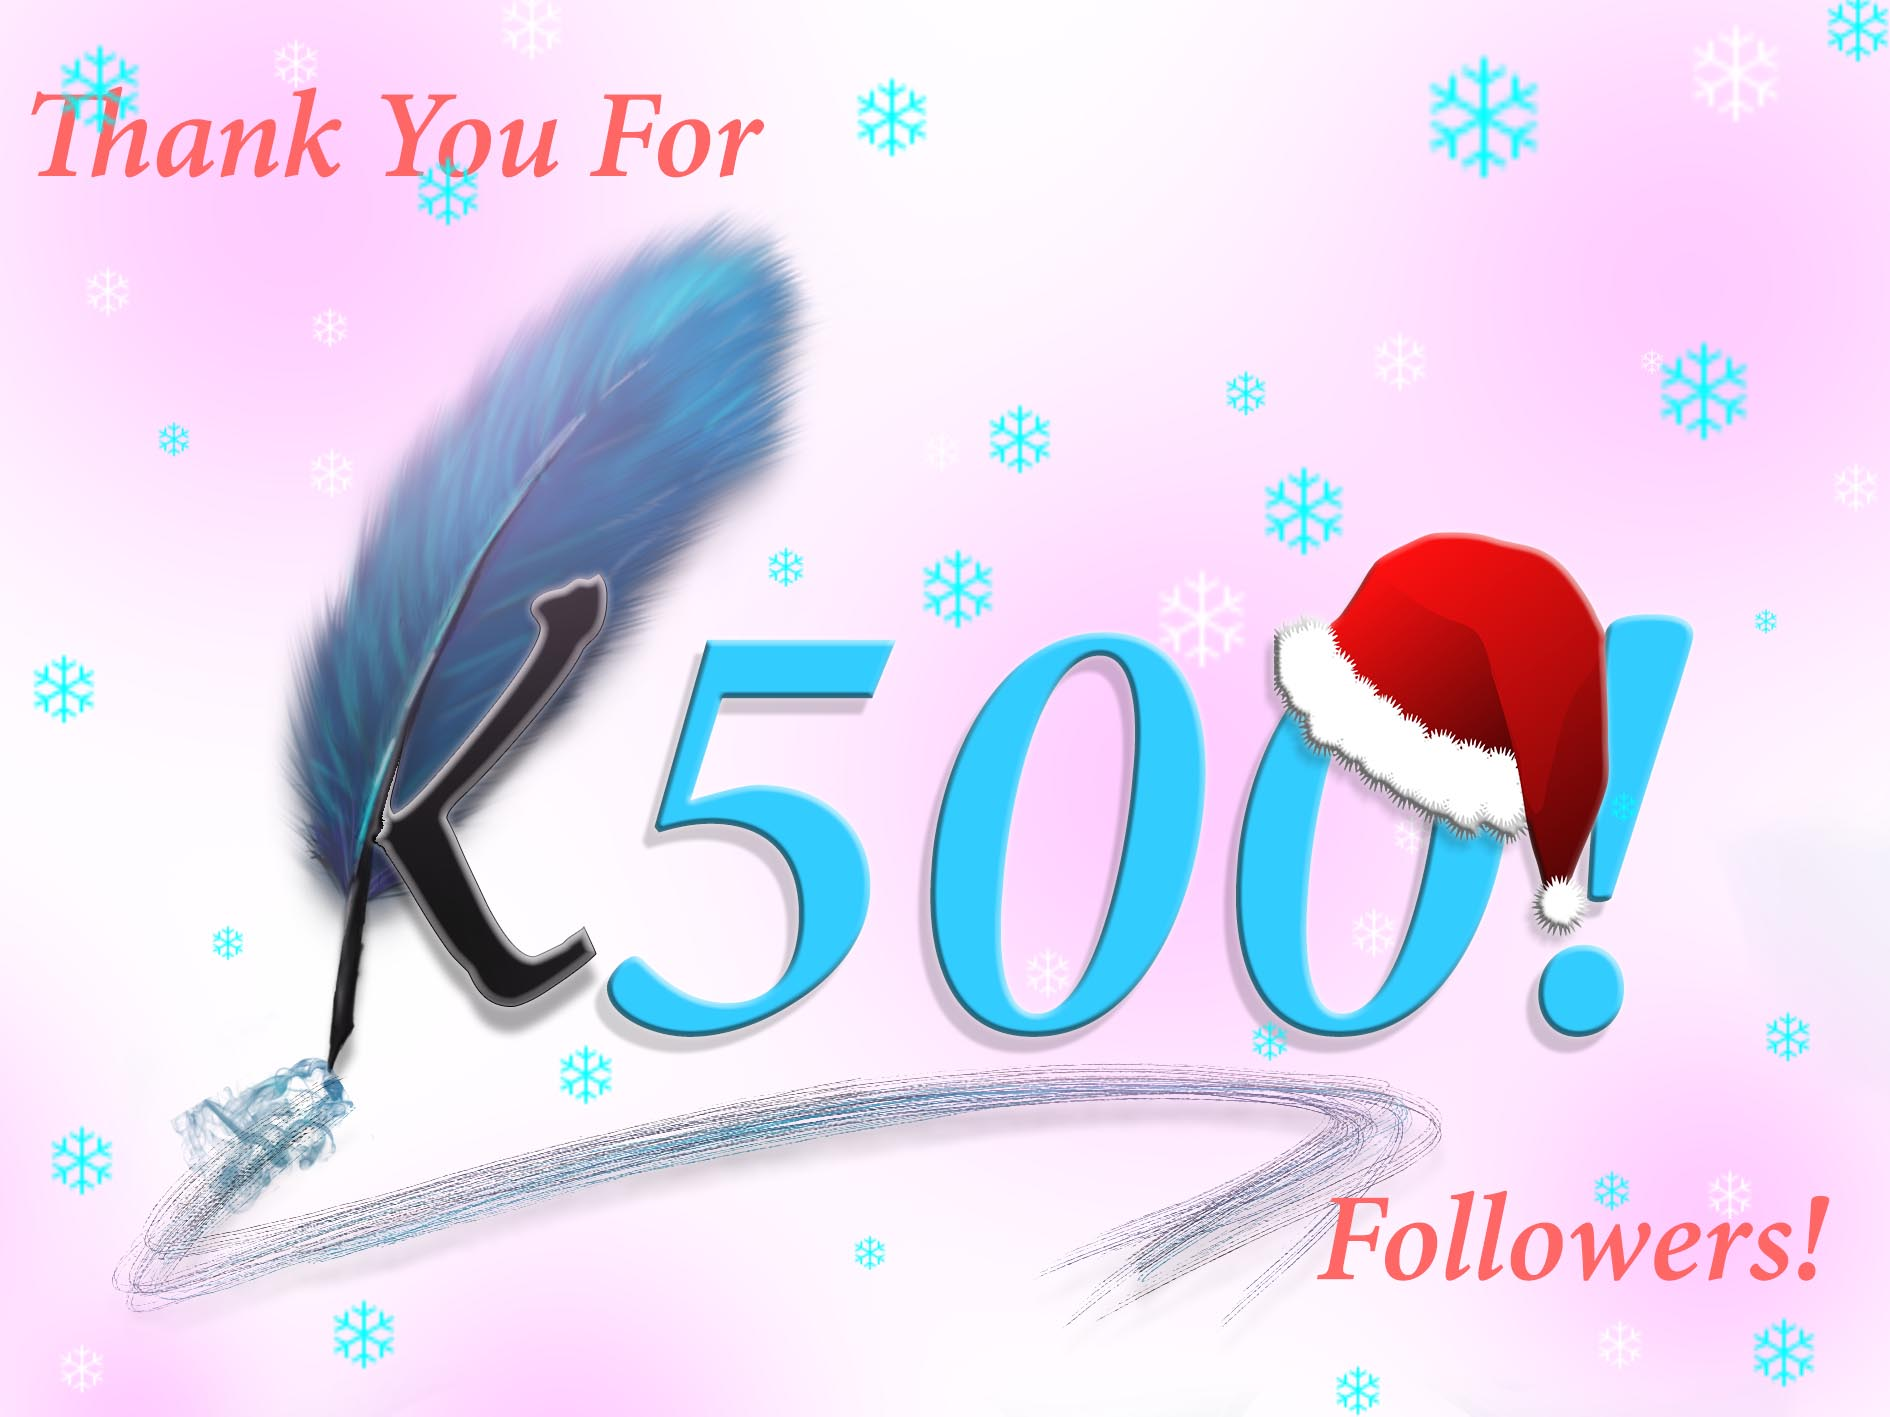 Thank You For 500 Followers!!